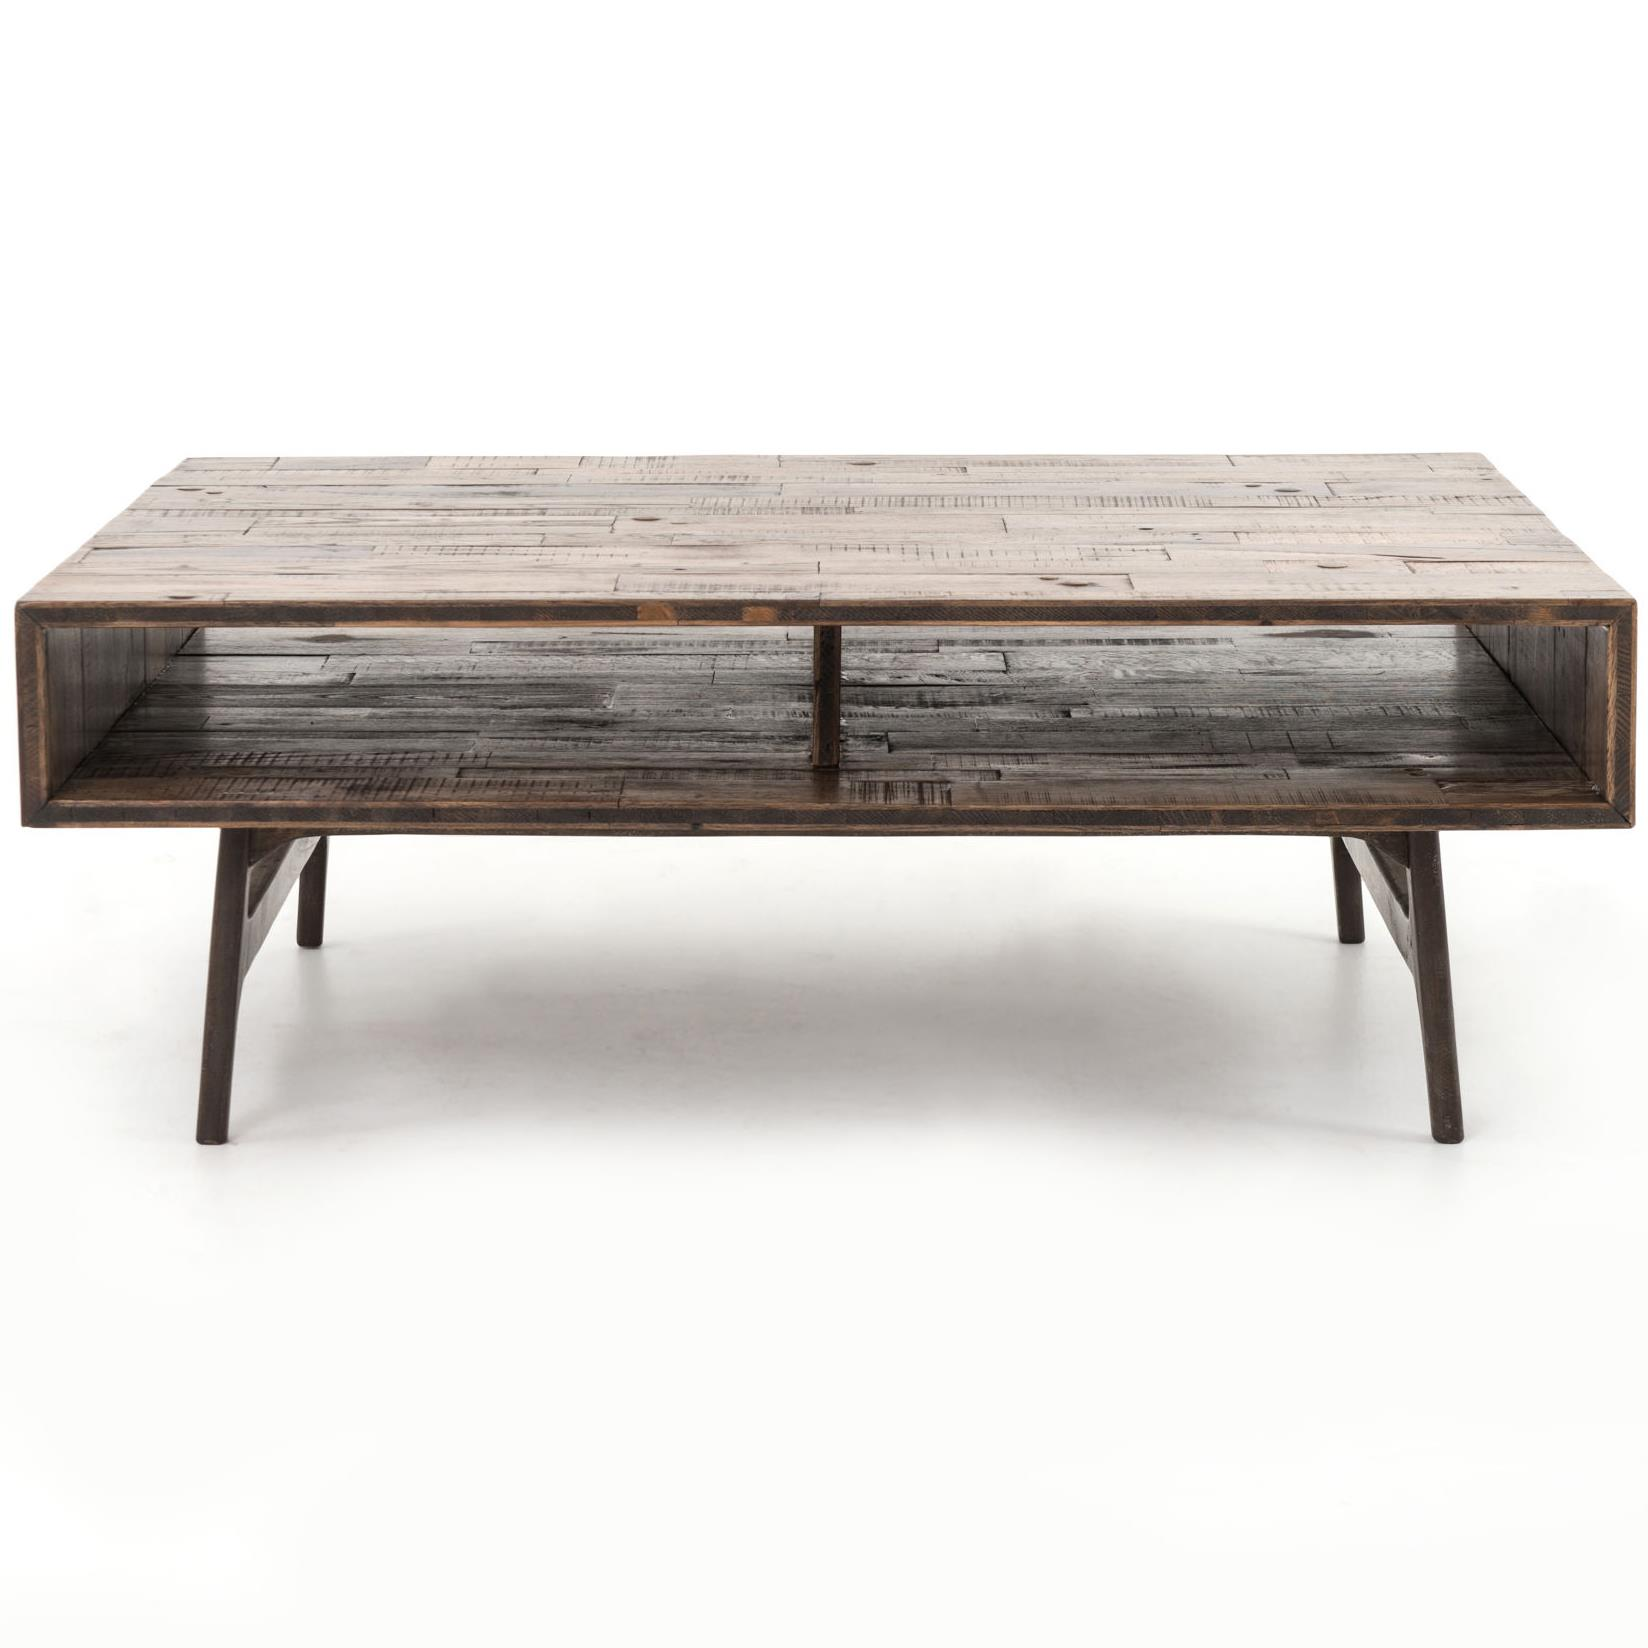 Nico Coffee Table with Open partments by Four Hands